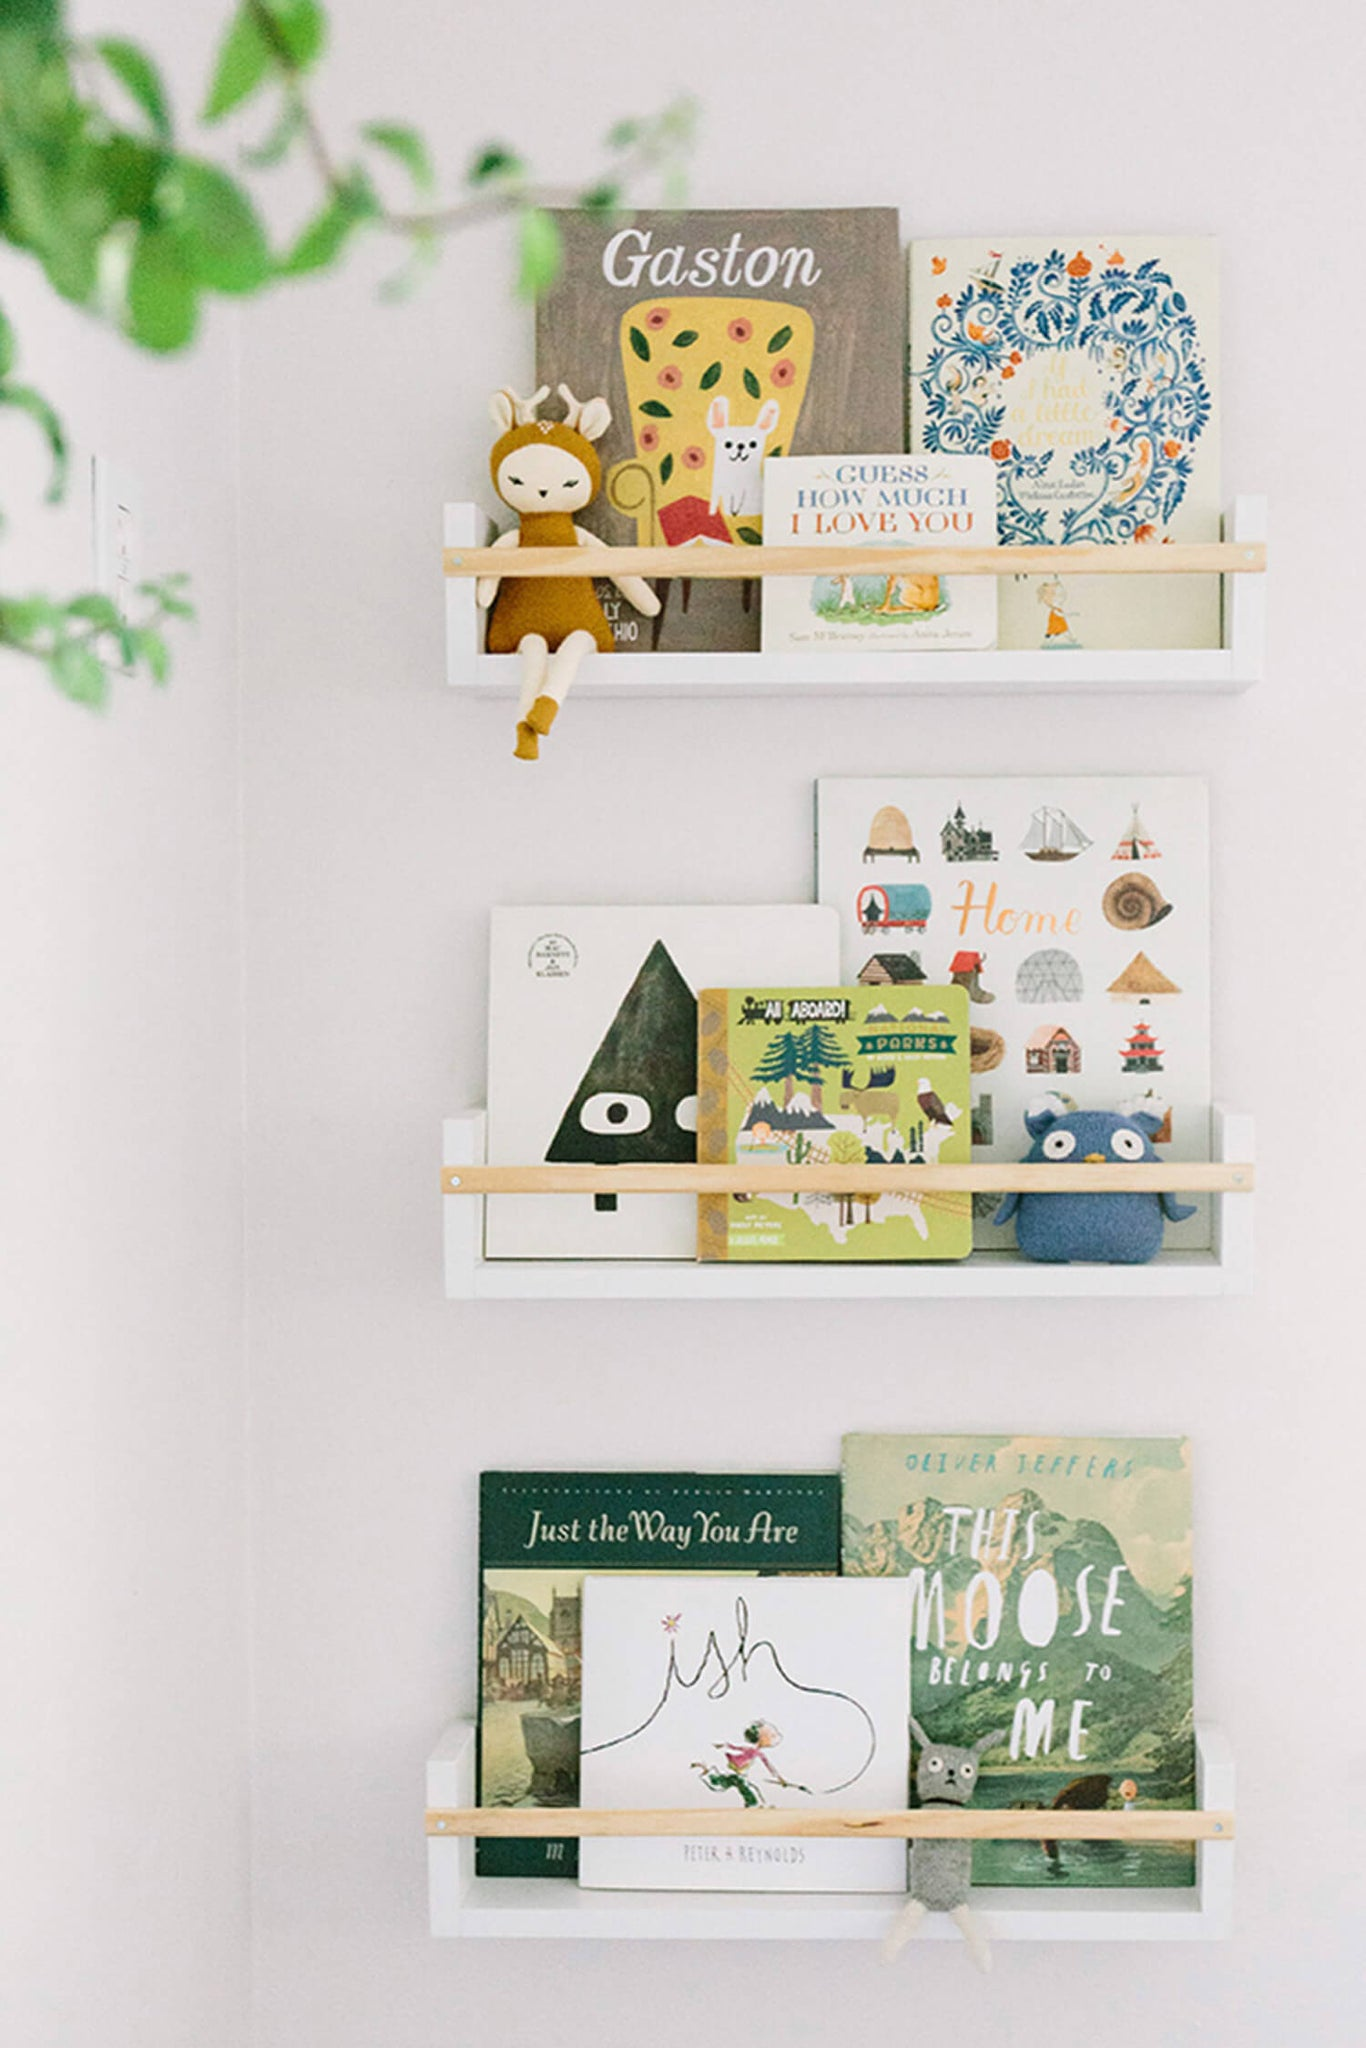 Nursery floating shelves with colorful books, art display.